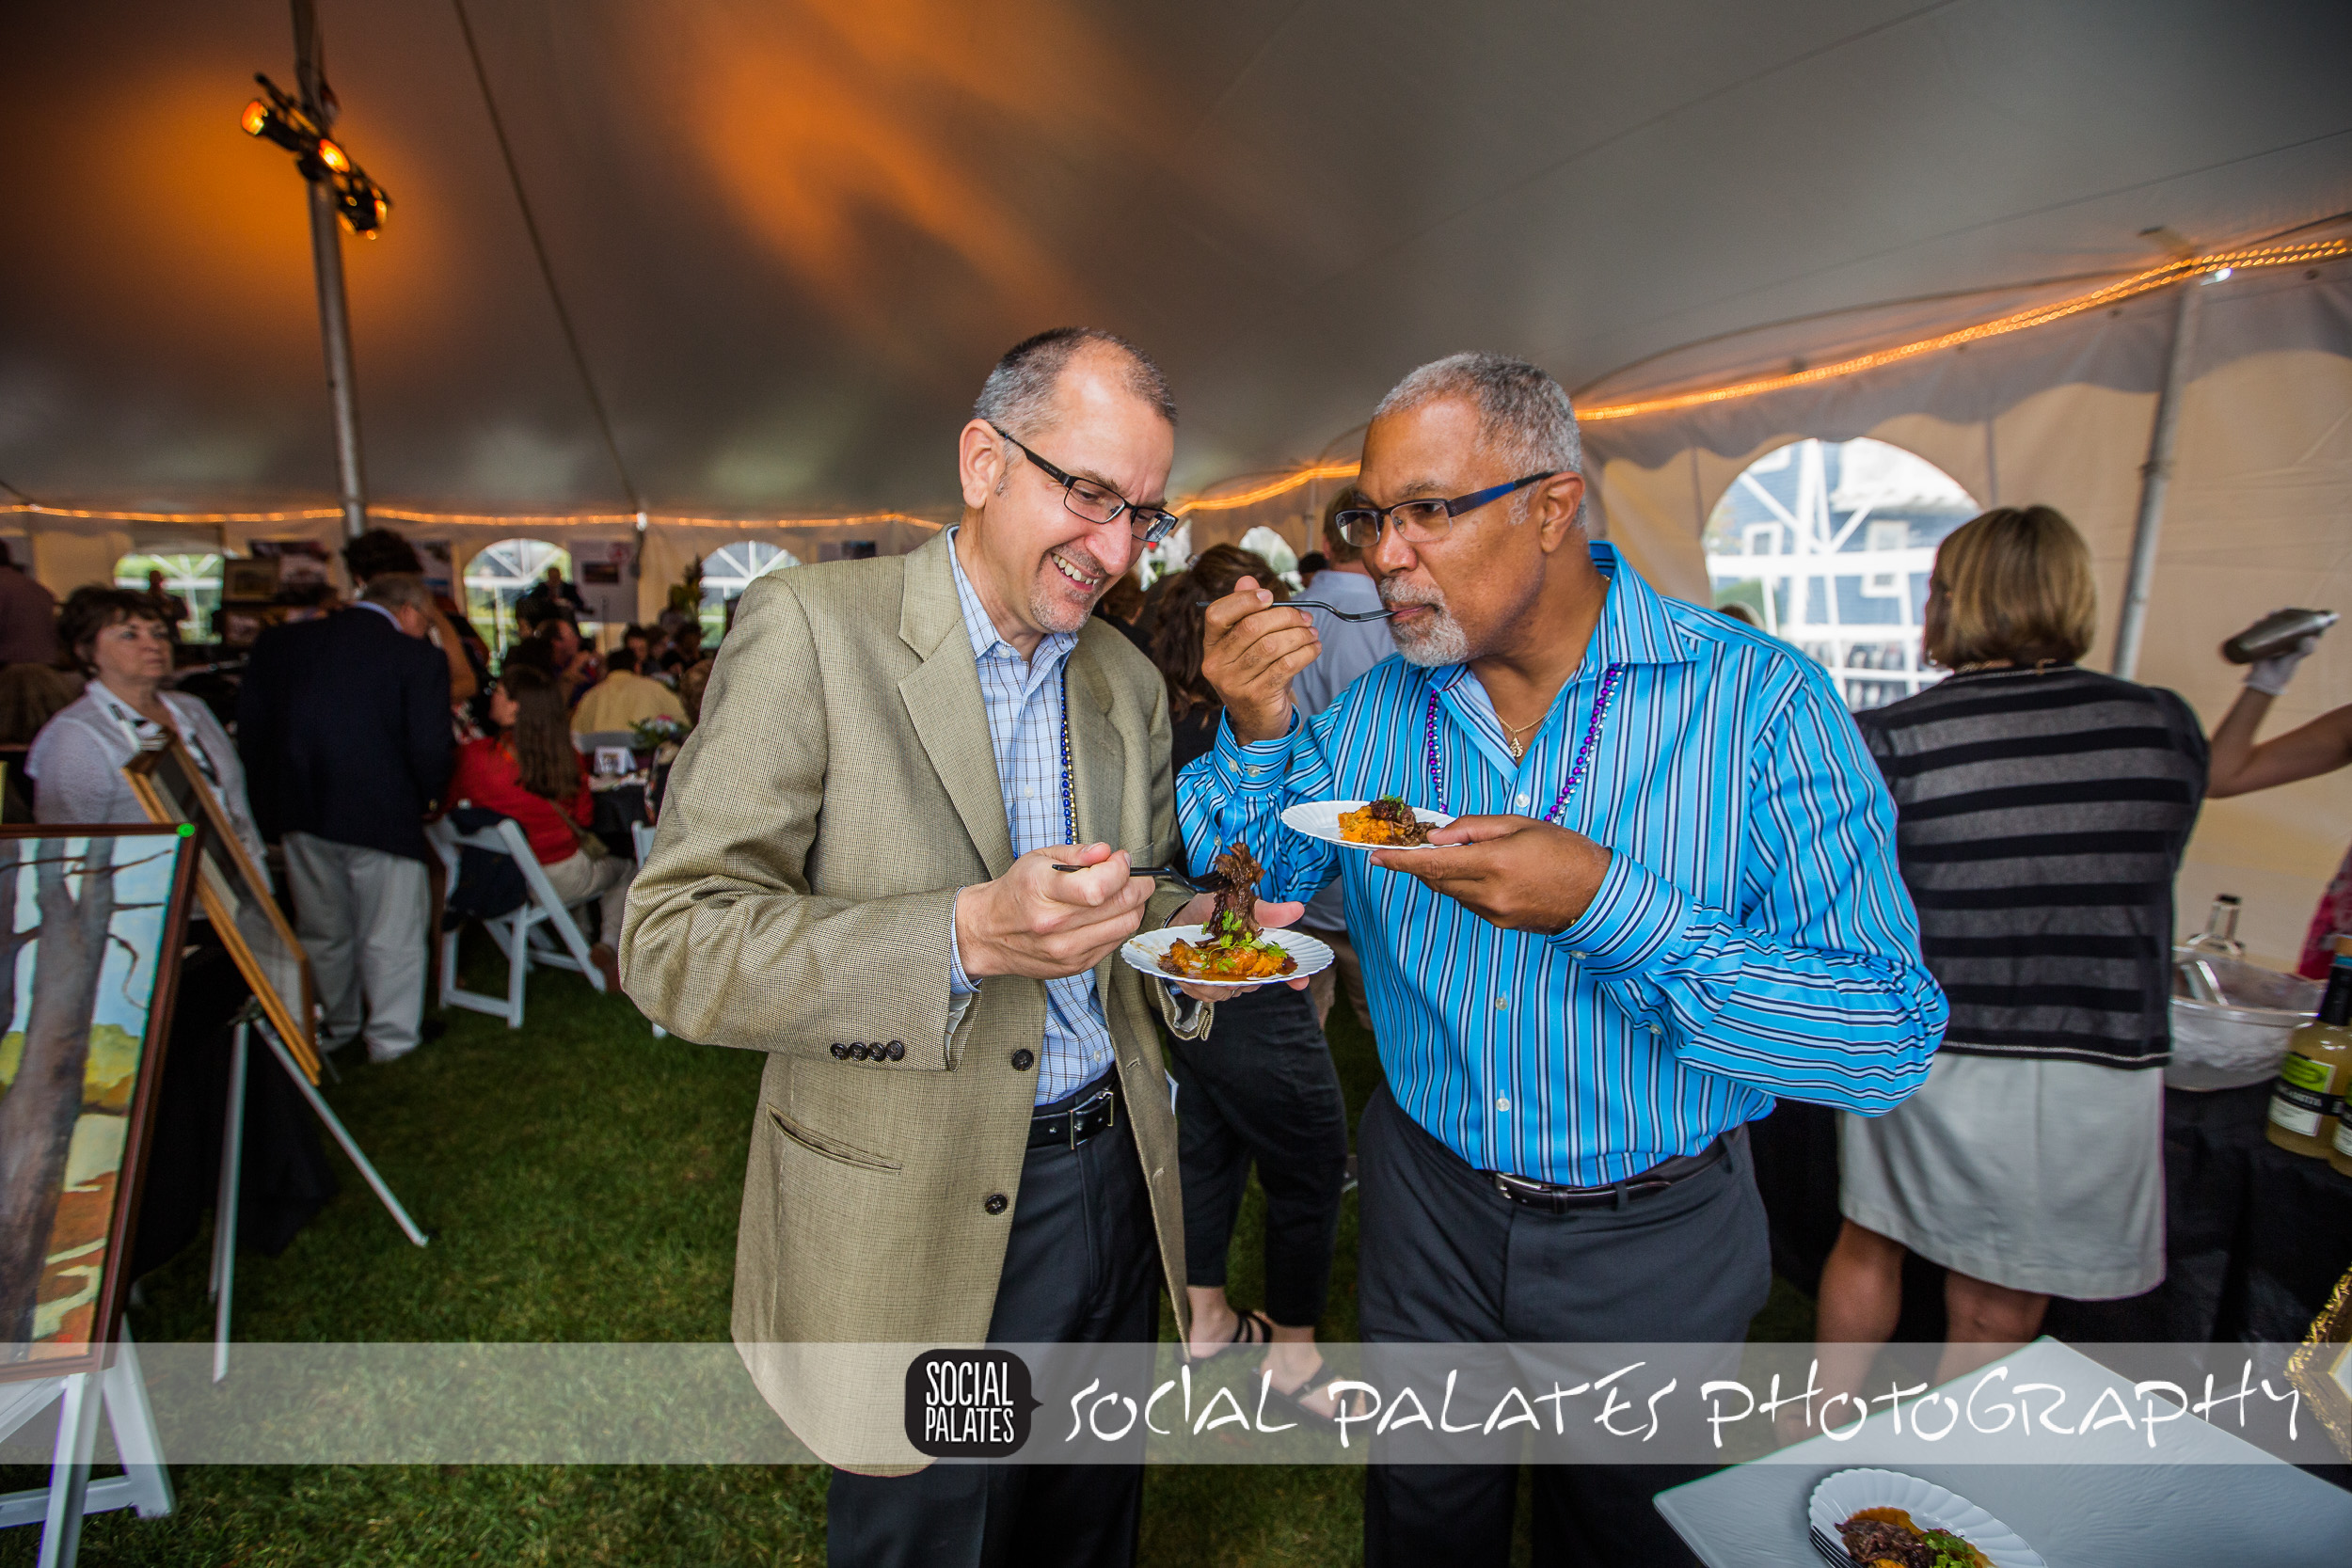 Taste_of_the_gables_2014-4715.jpg